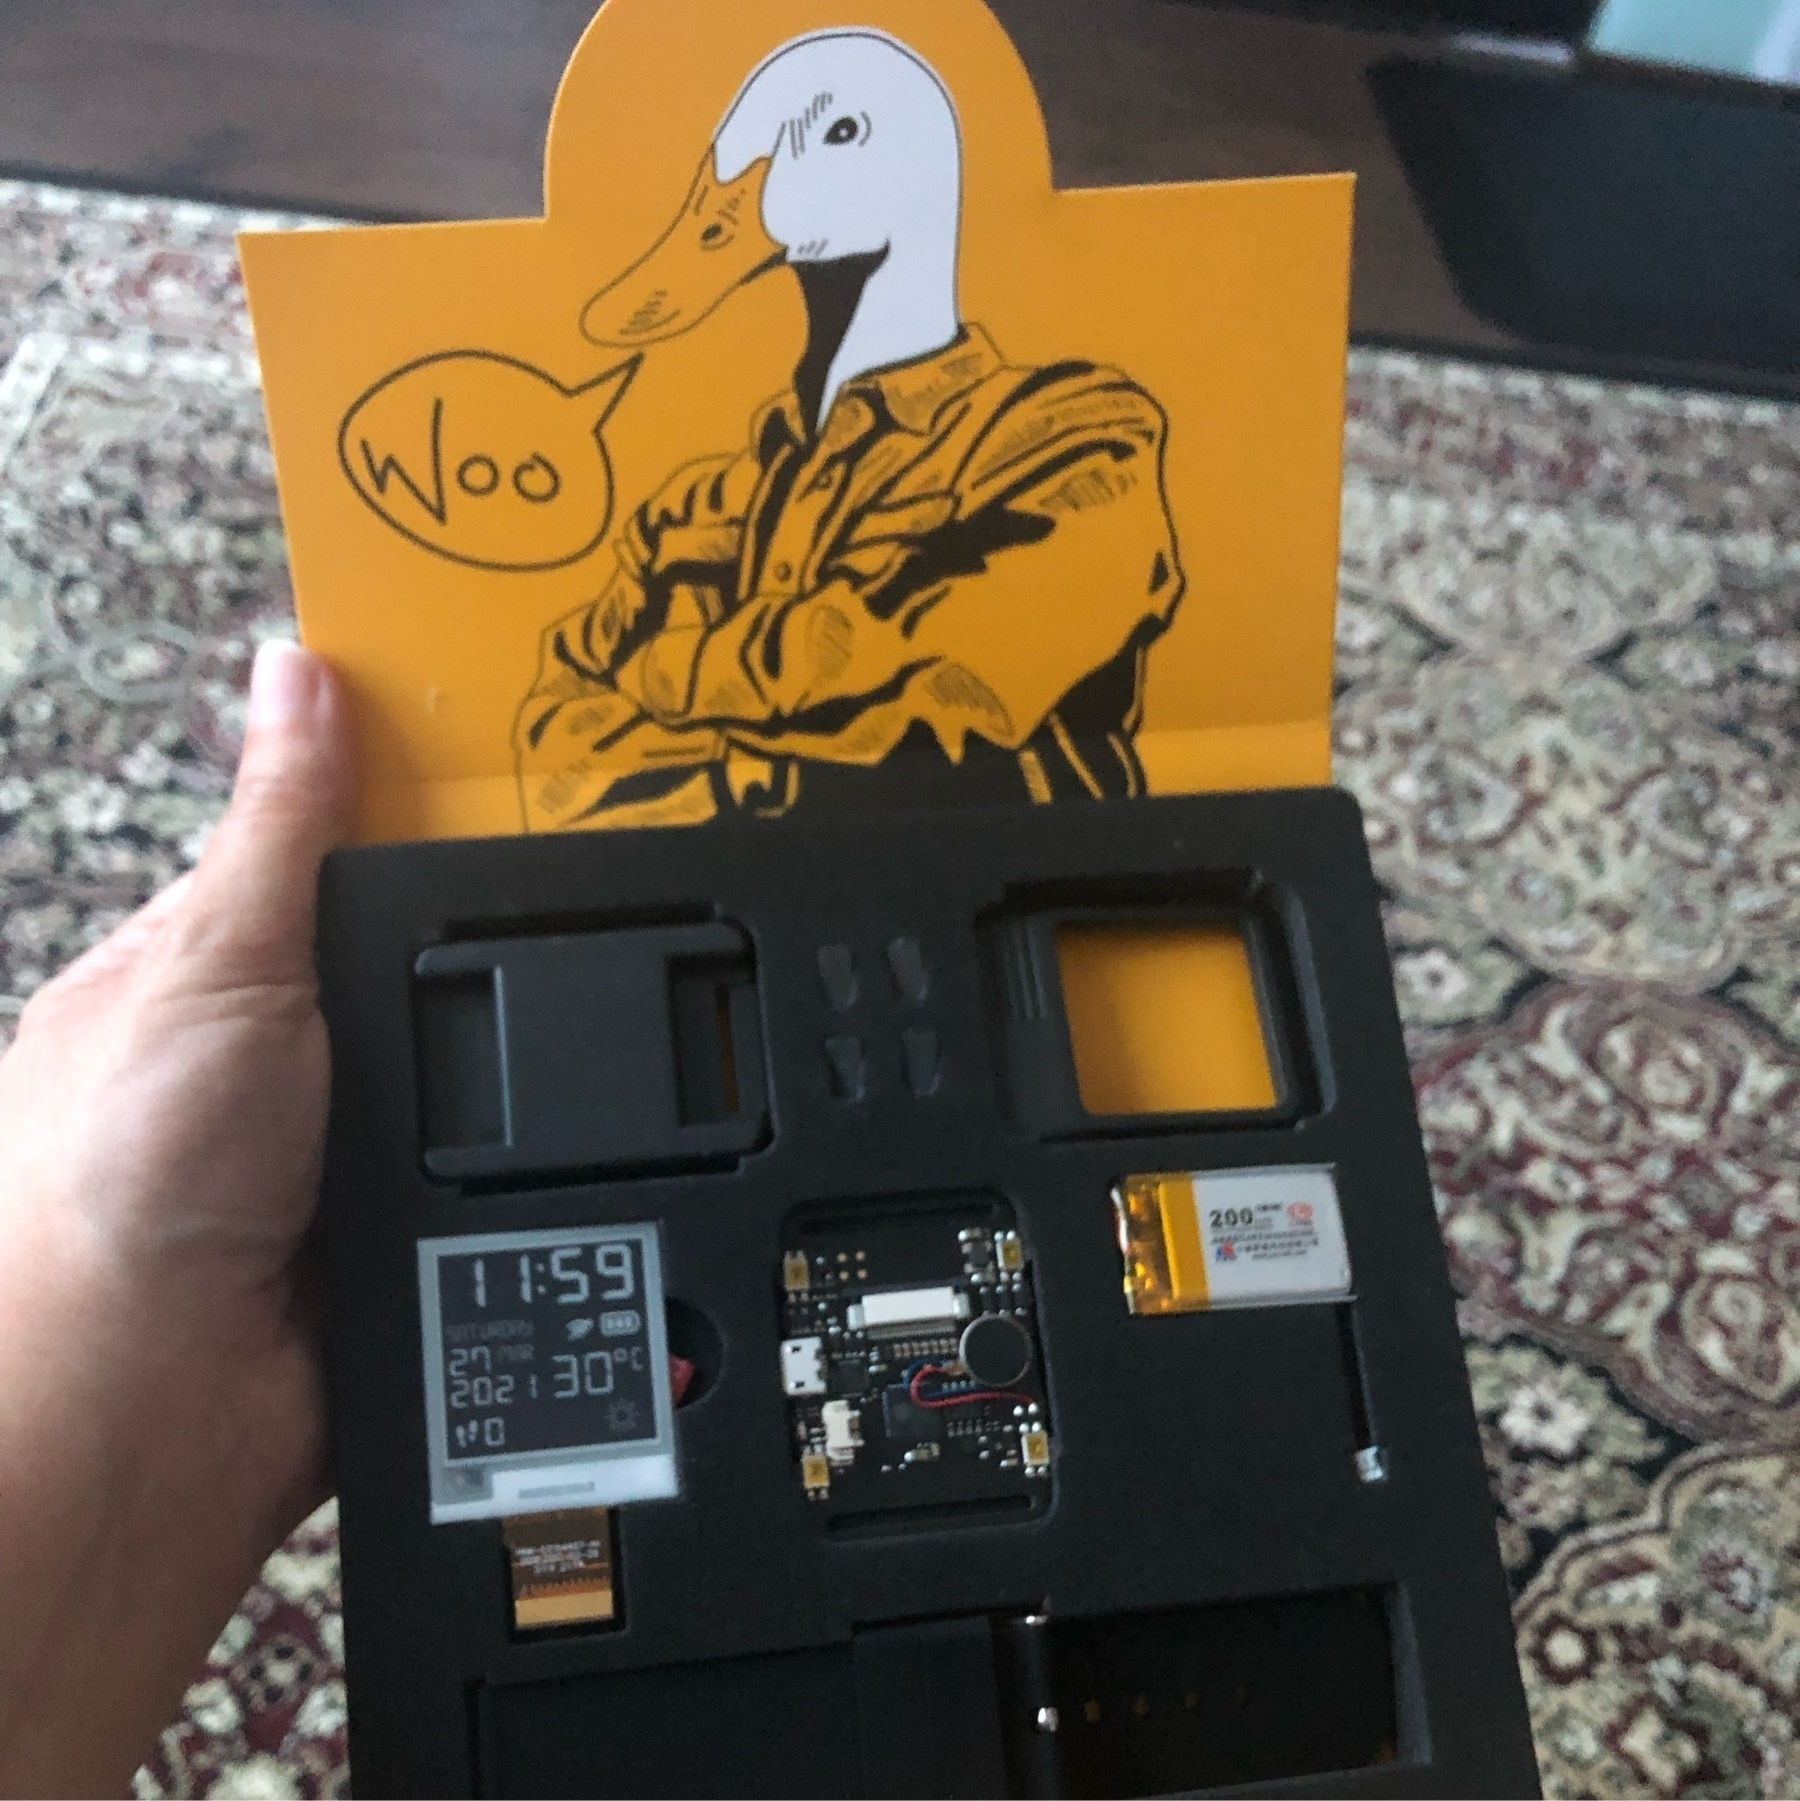 The opened box with the ESP32 board and e-paper display. An illustration of a goose man saying WOO on the inner flap